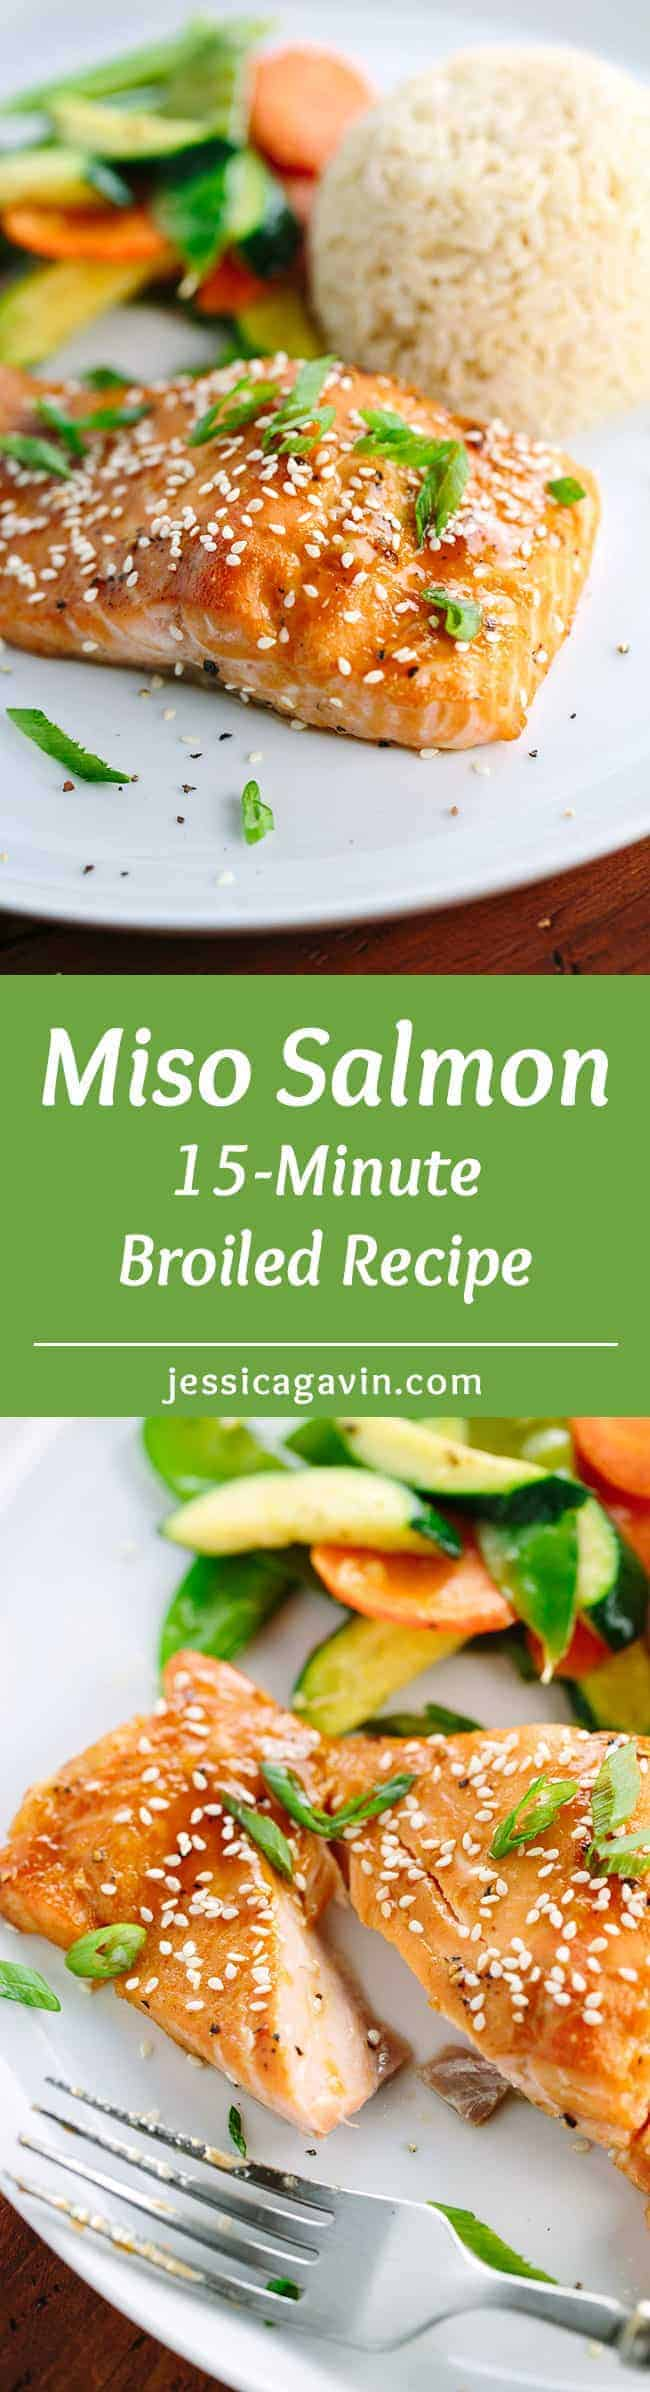 15 Minute Miso Glazed Salmon Recipe - broiled and drizzled with miso and soy for maximum flavor.